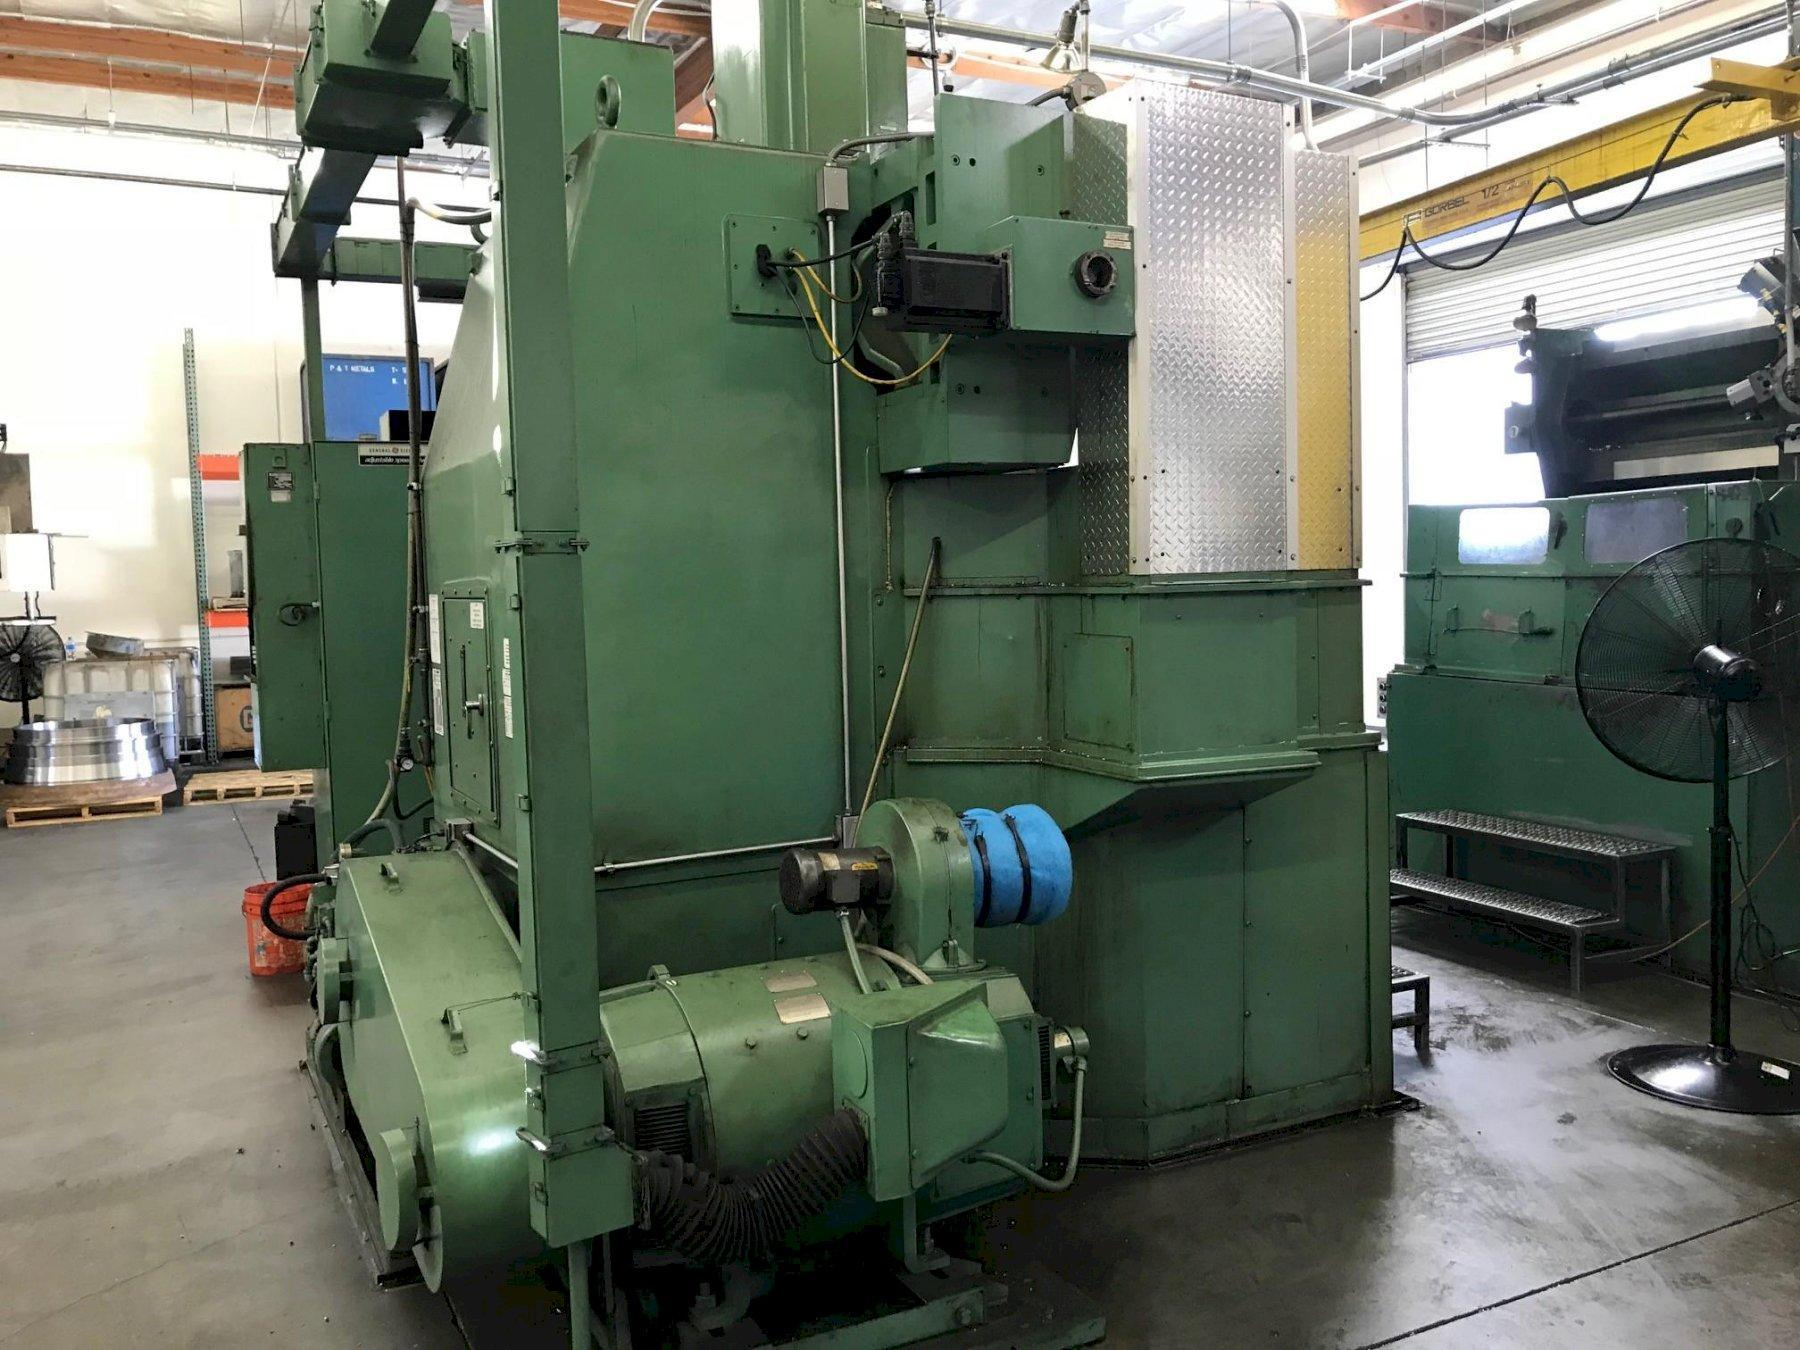 "52"" BULLARD DYNE AU TURN, 46"" POWER CHUCK, 52"" SWING, 5 SIDED POWER INDEX TURRET, ALLEN BRADLEY SERIES 9 CNC CONTROL, 75 HP, 1983"